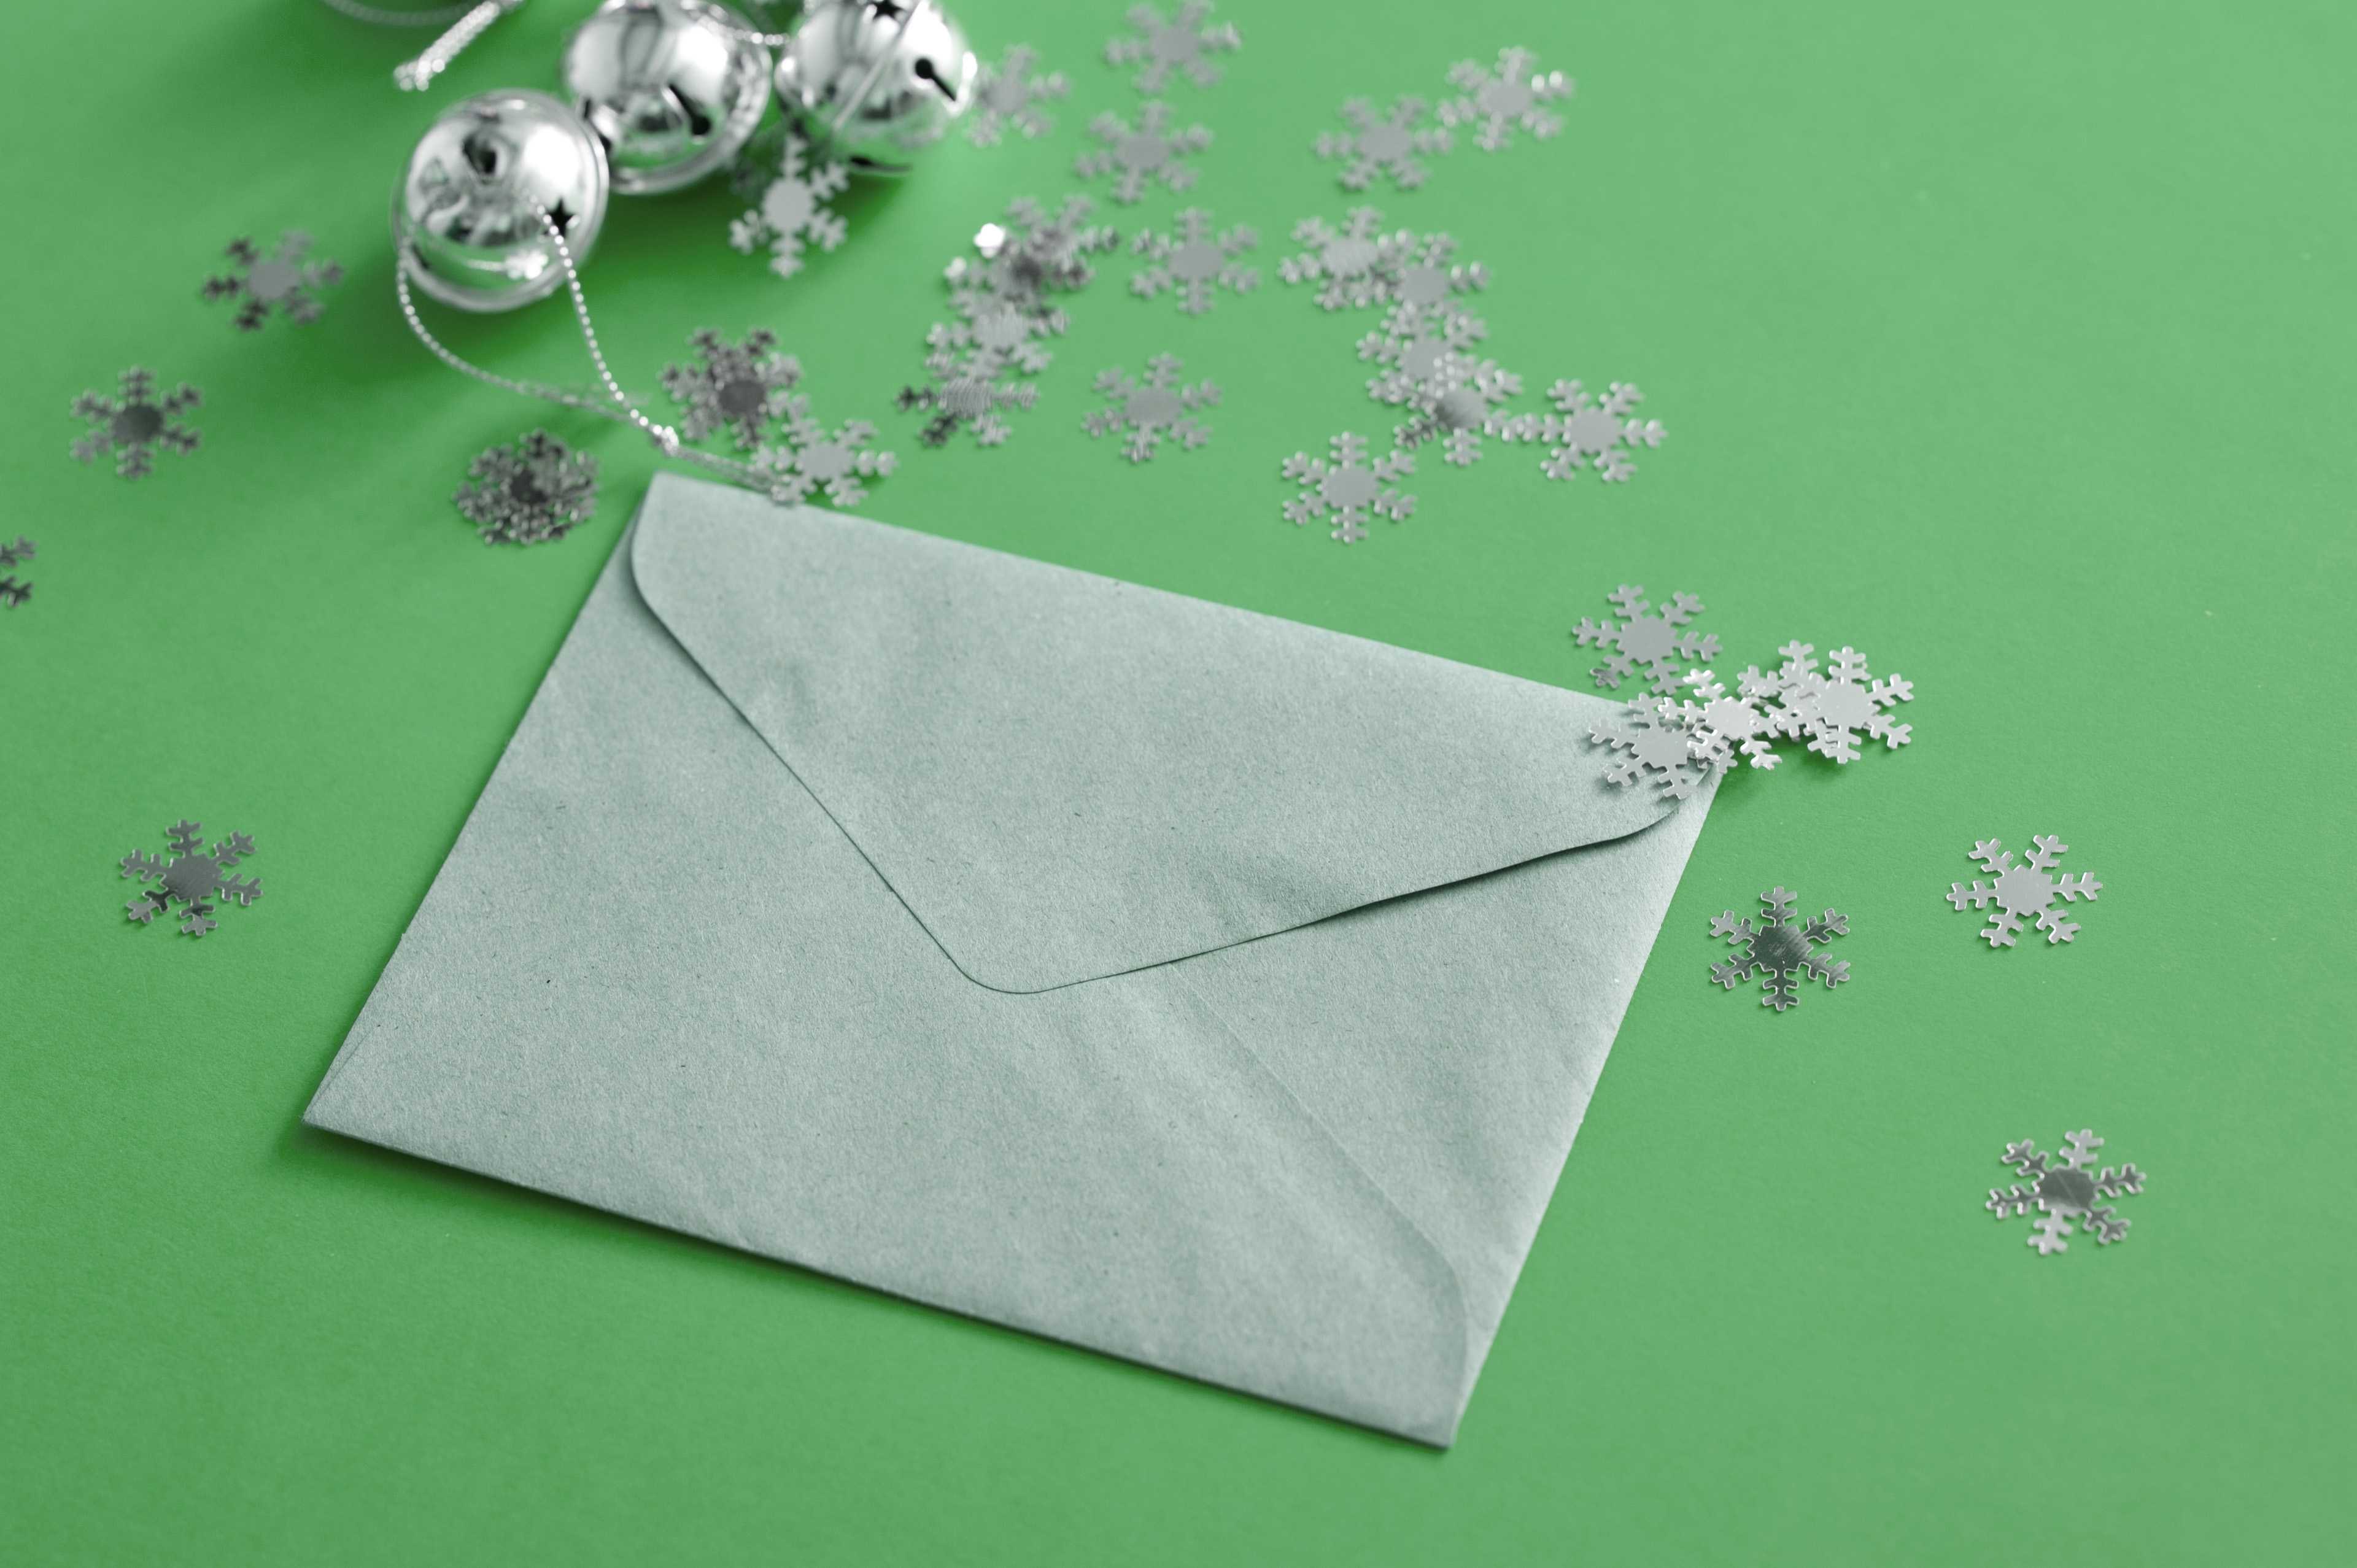 Green sealed Christmas letter and decorations with scattered snowflakes and silver bells on a green background for festive correspondence